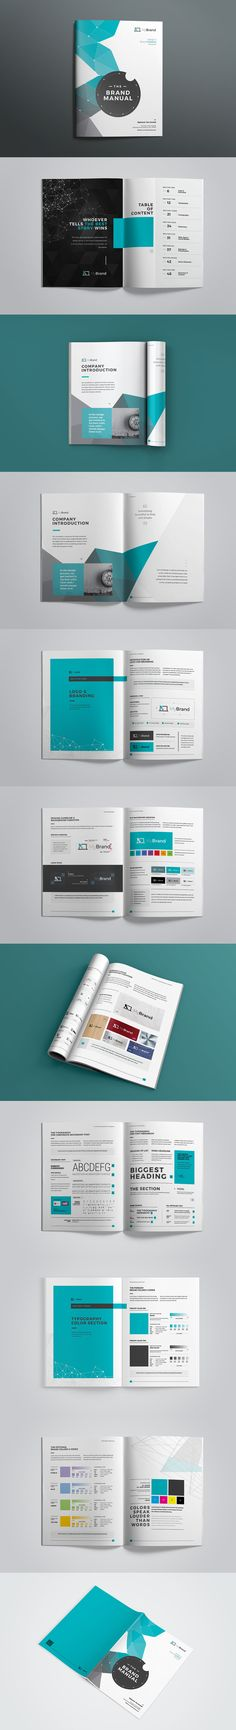 Professional & Creative Logo & Business Brand Manual Template INDD, IDML, EPS & PDF File Format - 46 Pages Professional fully Editable.